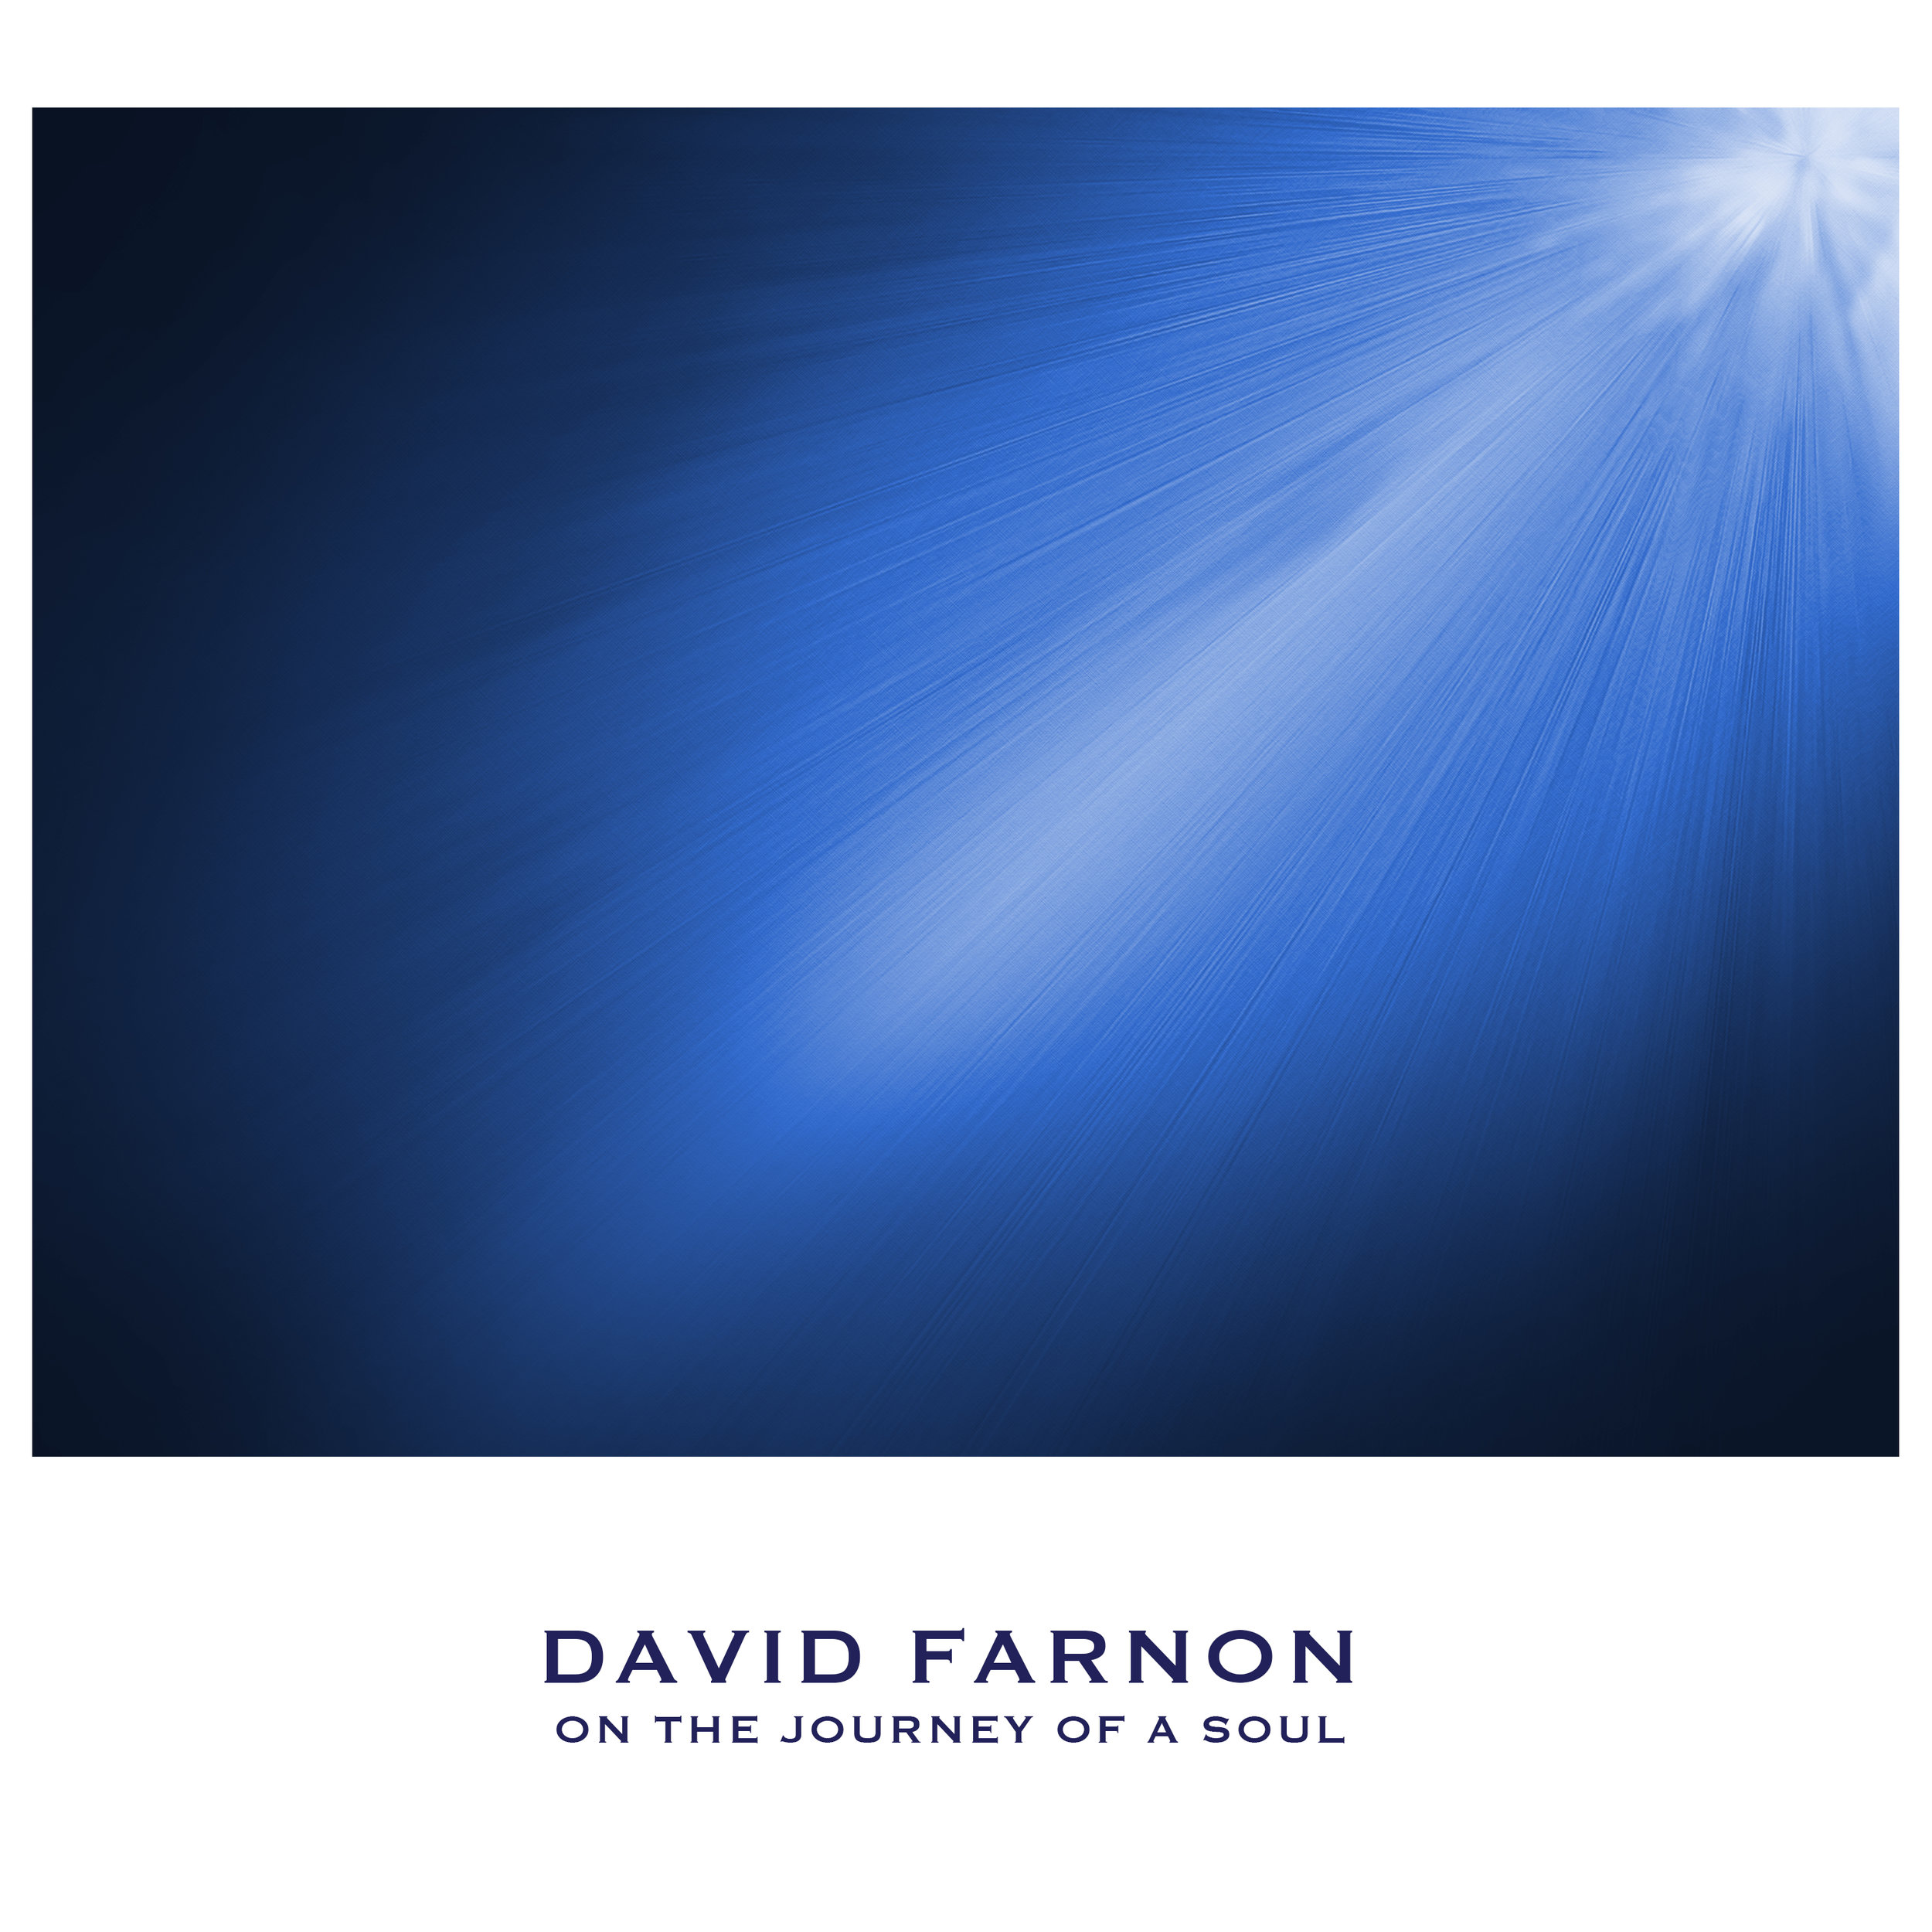 On The Journey Of A Soul | David Farnon (2019) -